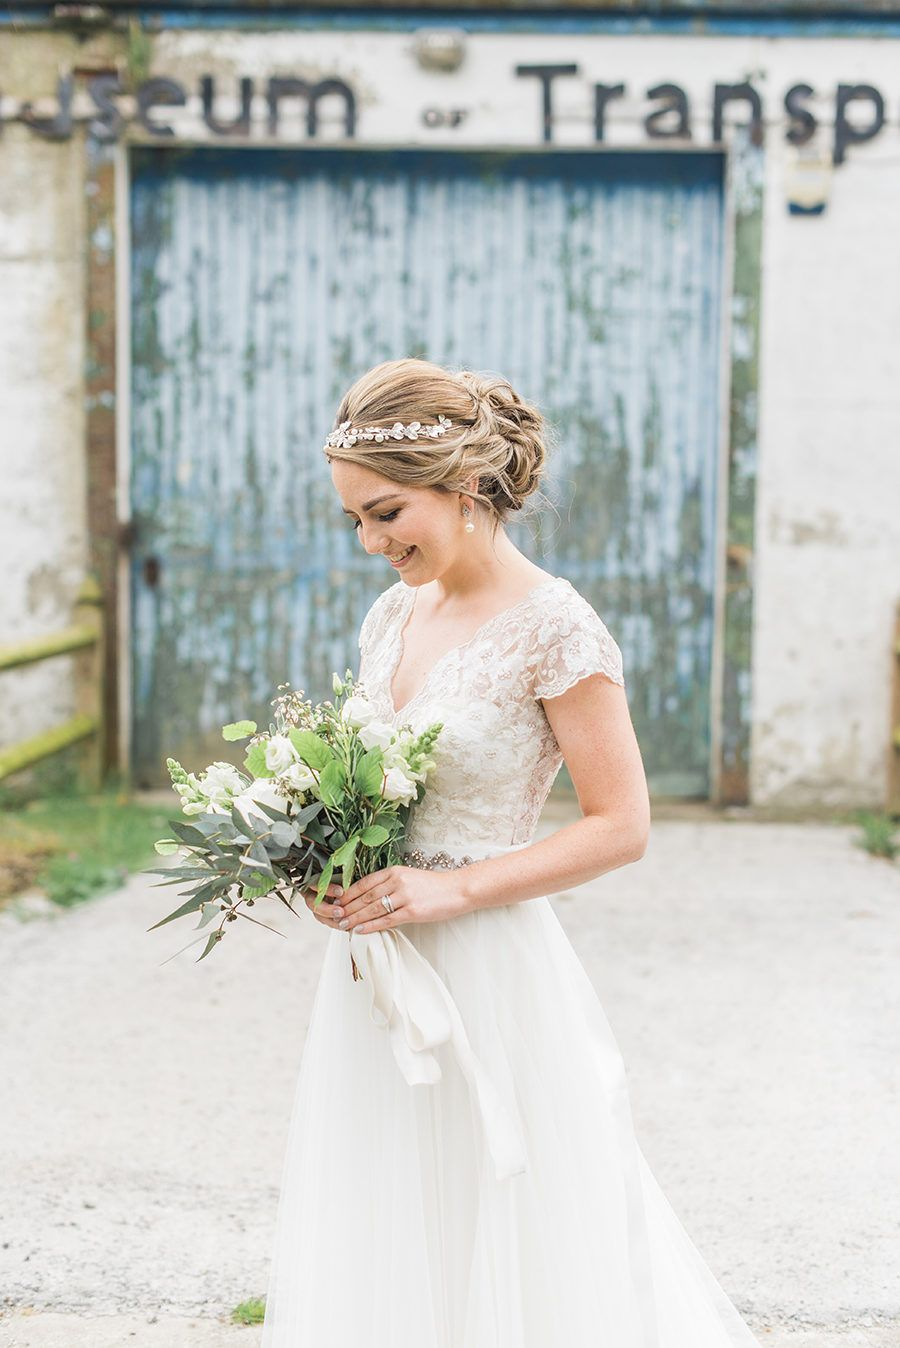 The Sweetest Wedding At The 18th Century Millhouse In Ireland Wedding Bridal Beauty Flower Girl Dresses [ 1348 x 900 Pixel ]